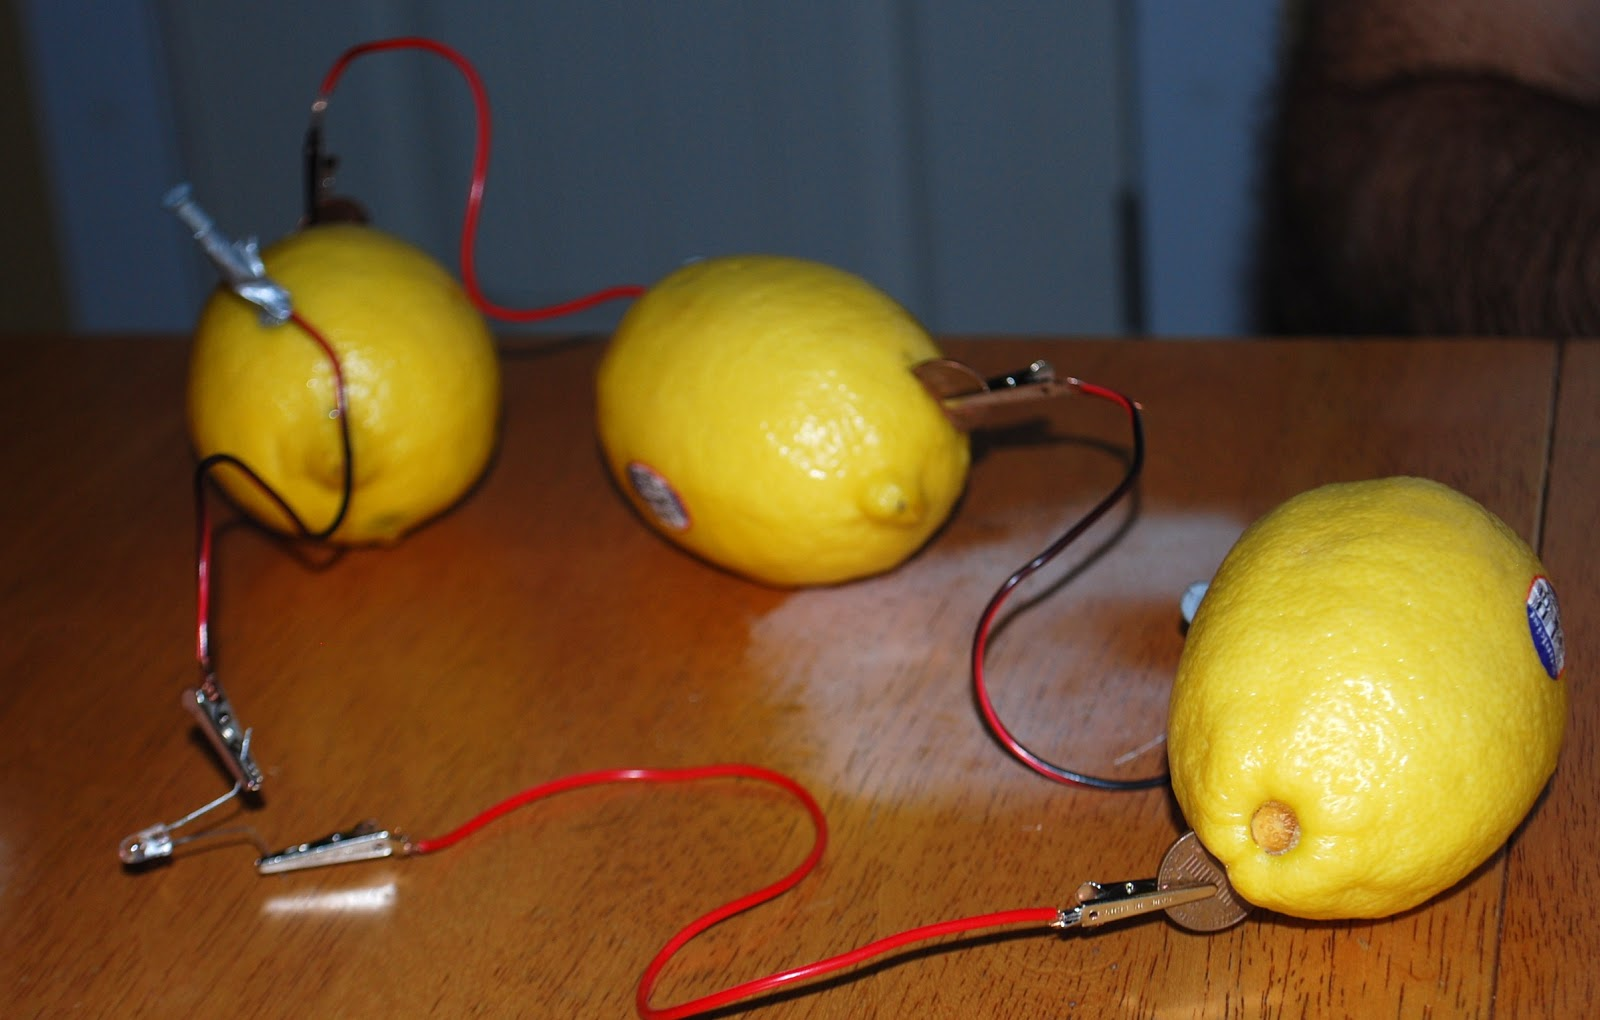 lemon battery science project One of my favorite science experiments to do easily at home is making a battery out of a lemon all you need is a lemon and a few simple supplies if you don't already have them lying around, a quick trip to the hardware store will take care of everything you need.